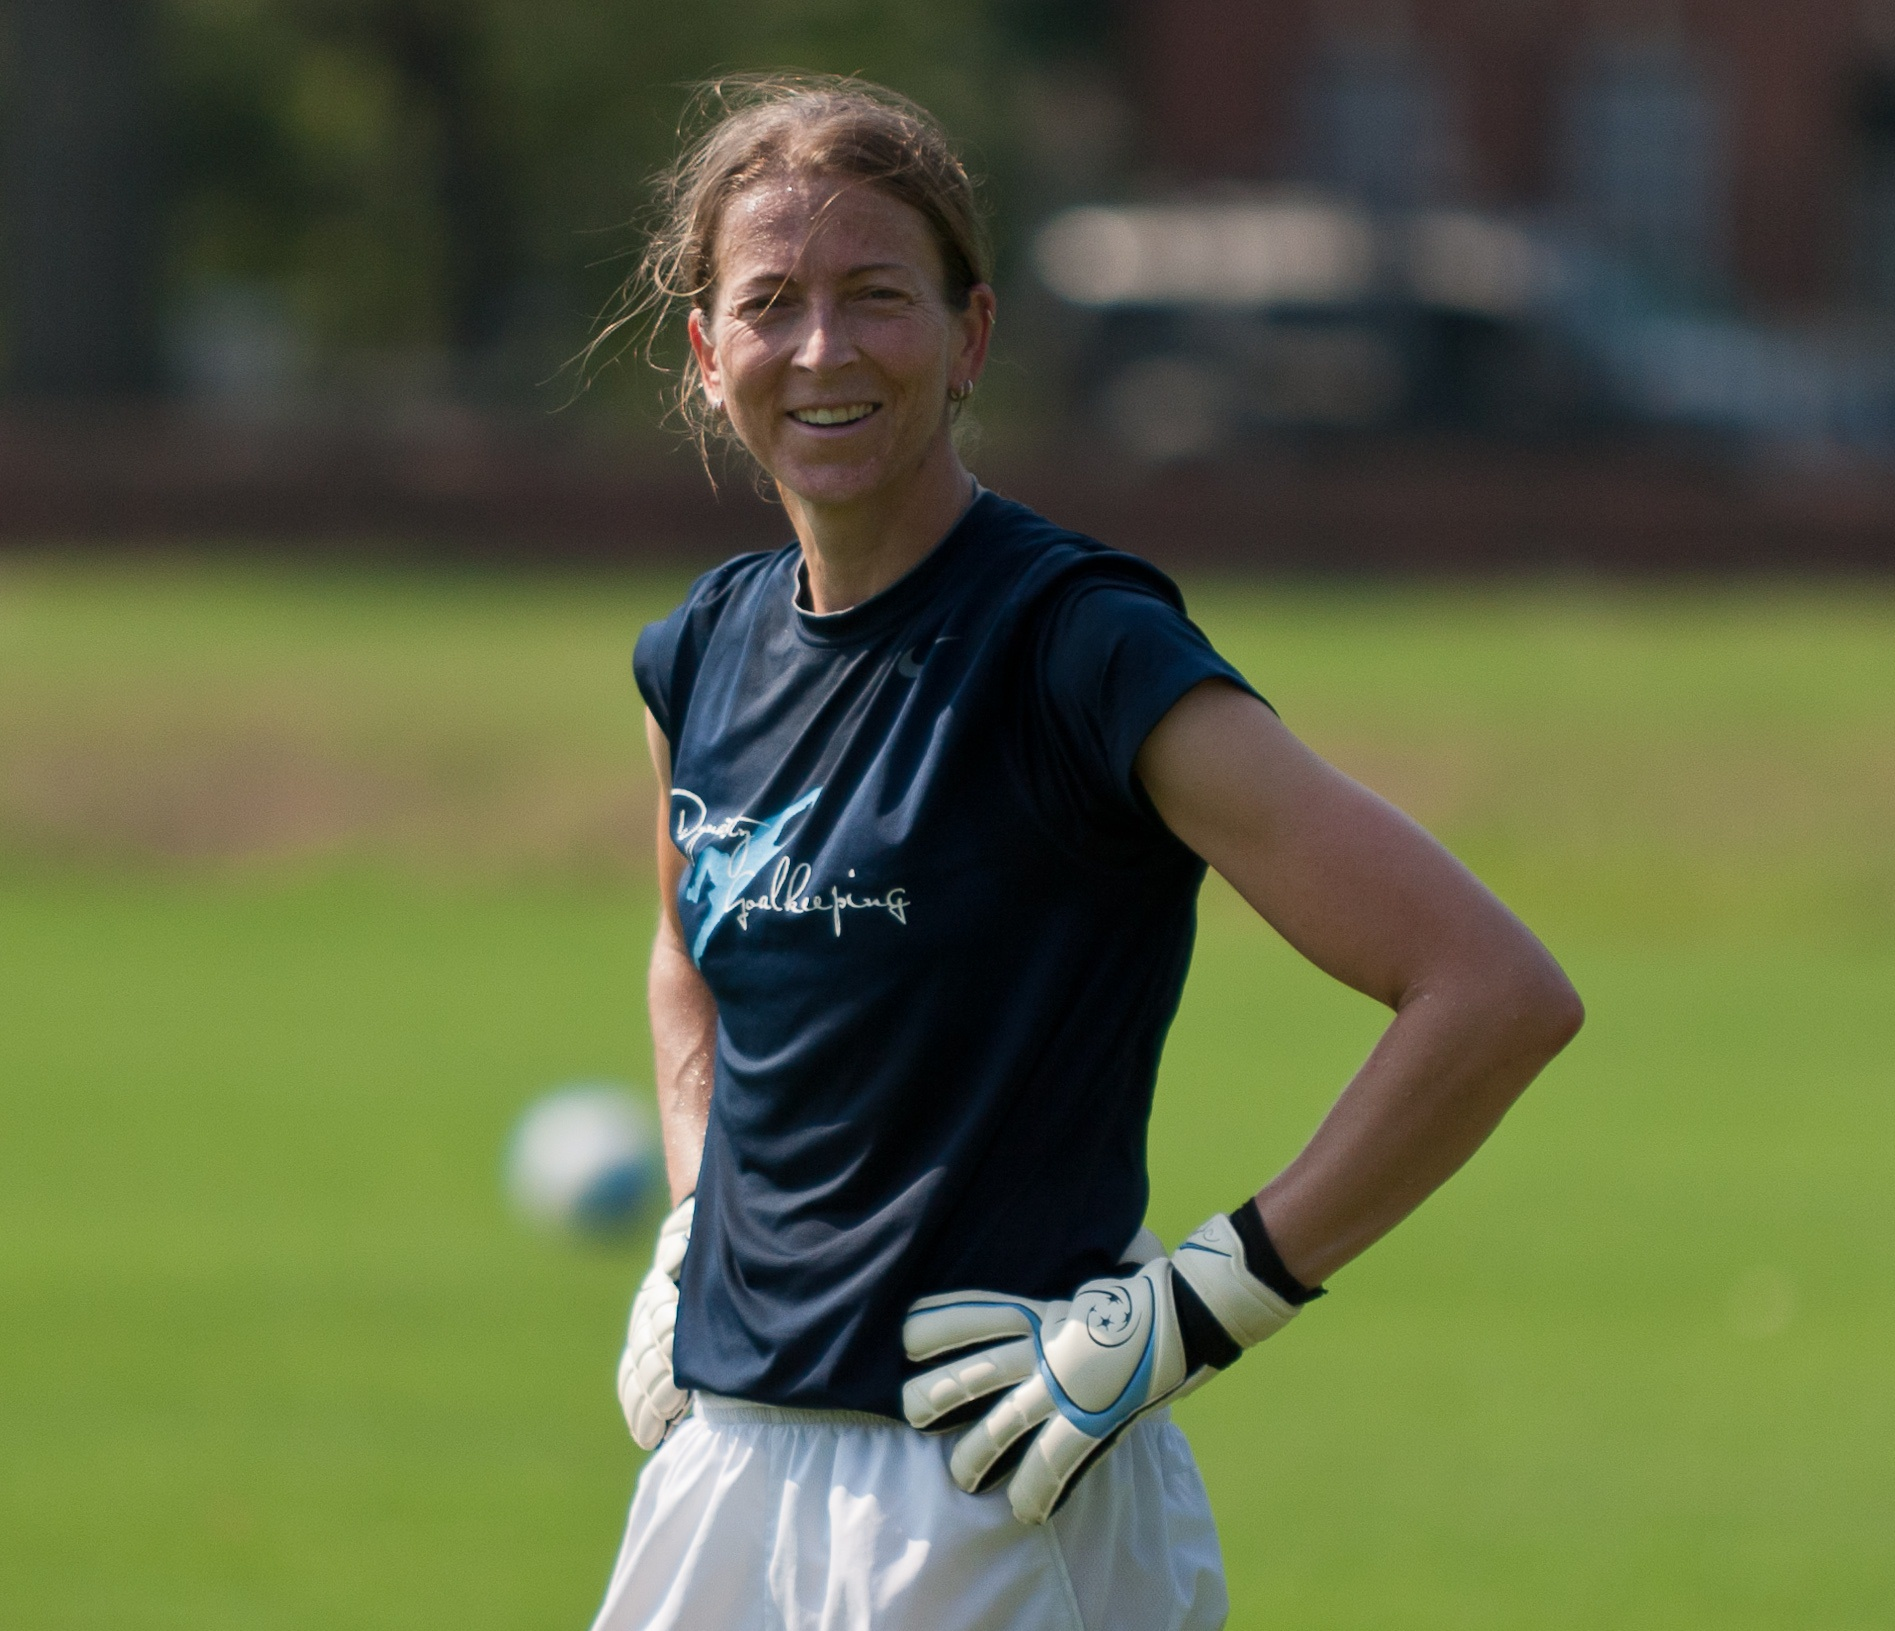 TRACY NOONAN - FORMER USWNT | DYNASTY GOALKEEPING